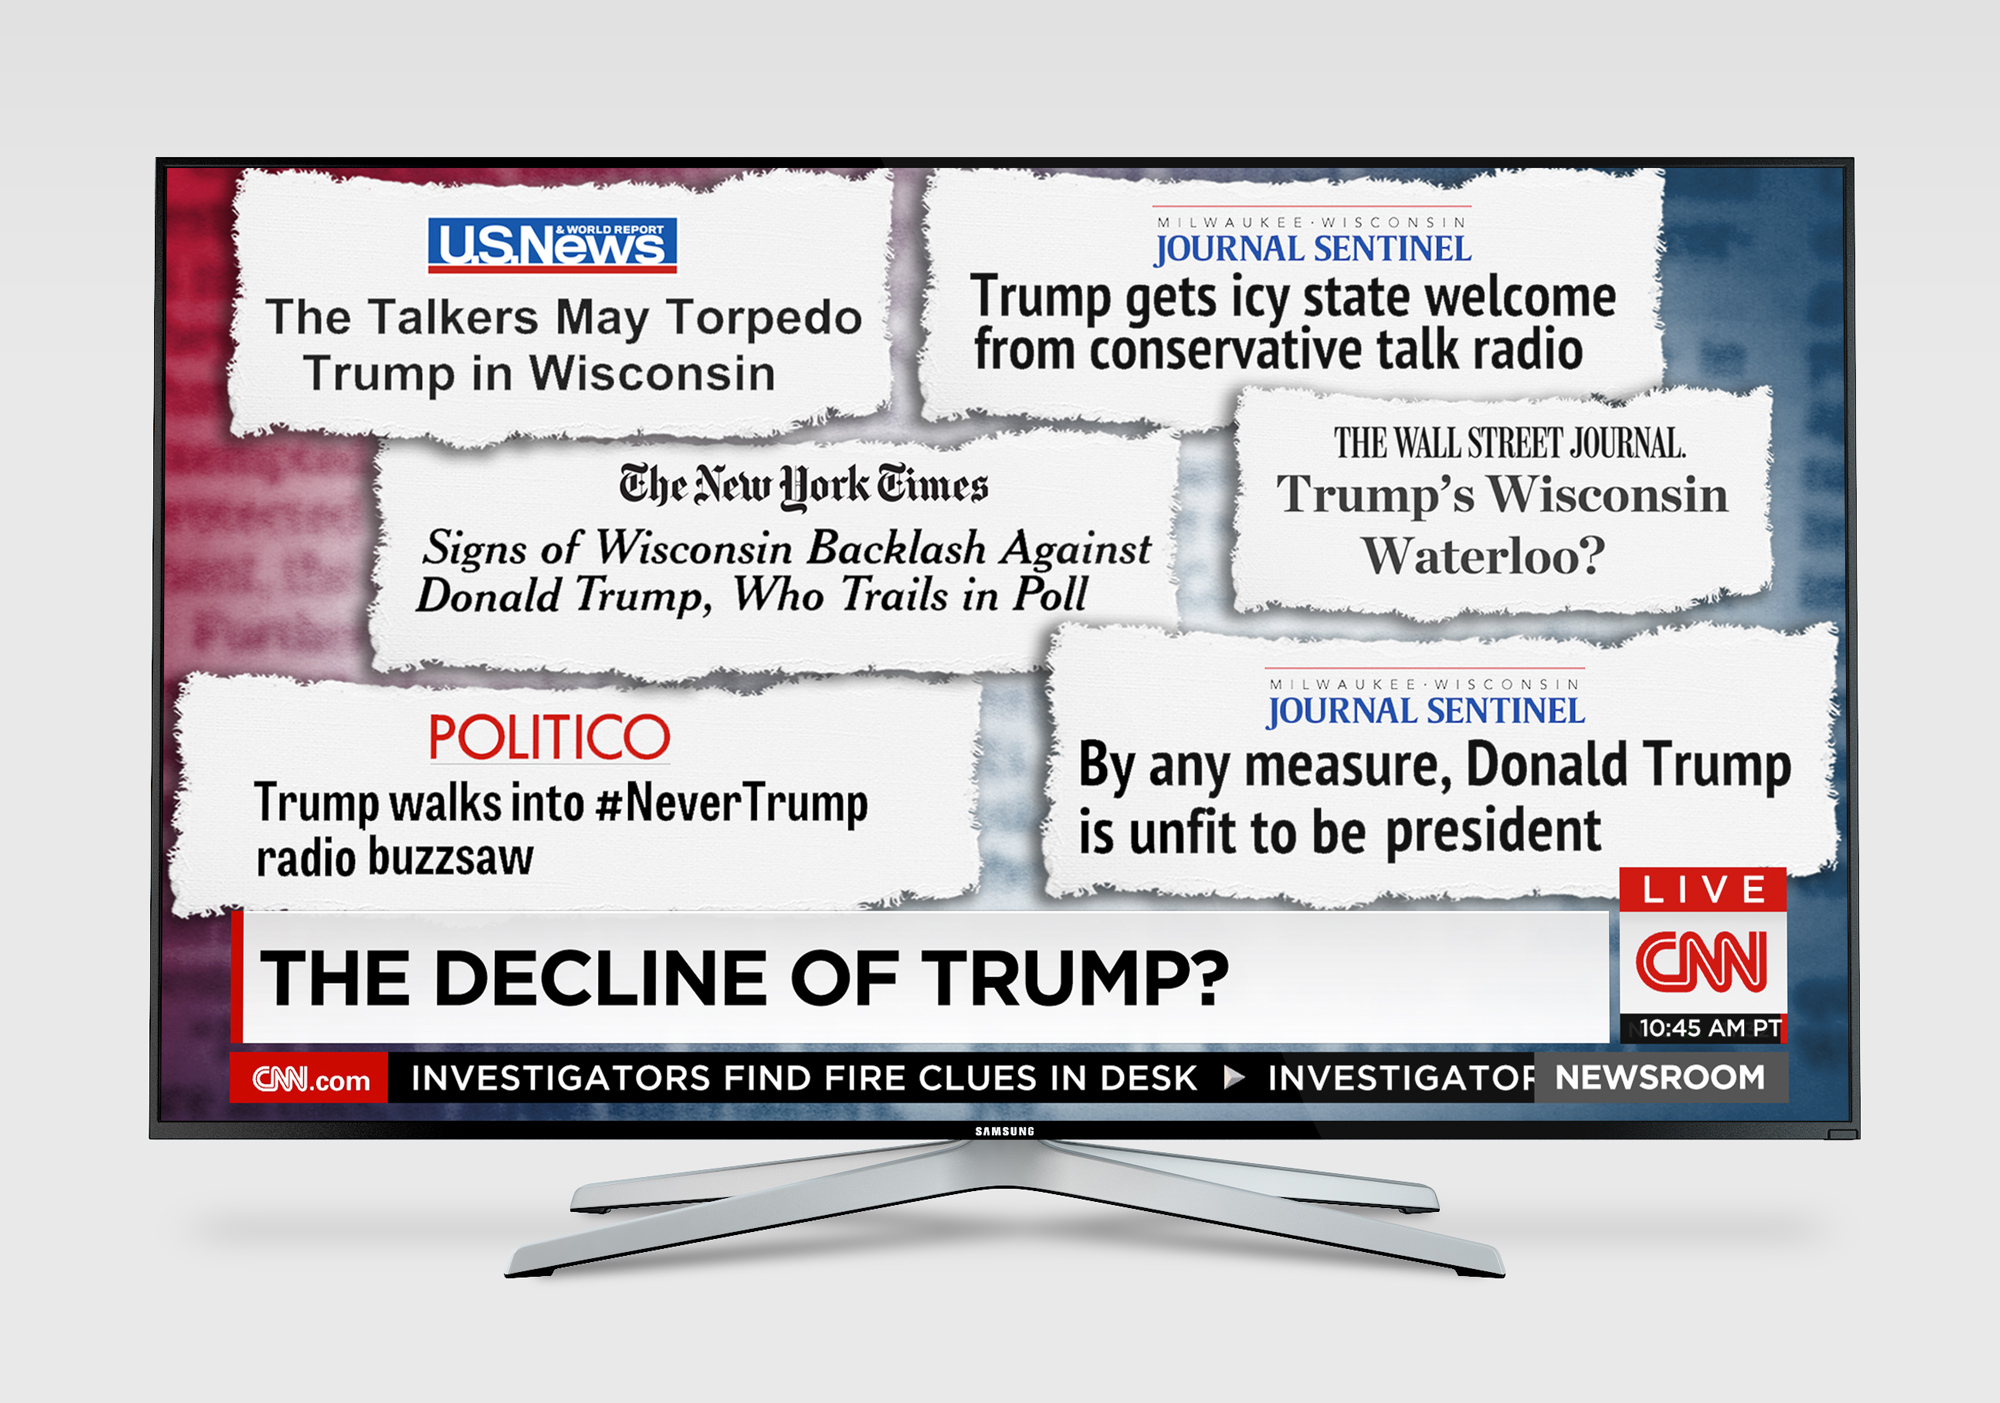 Samung-tv-mockup-trump.jpg